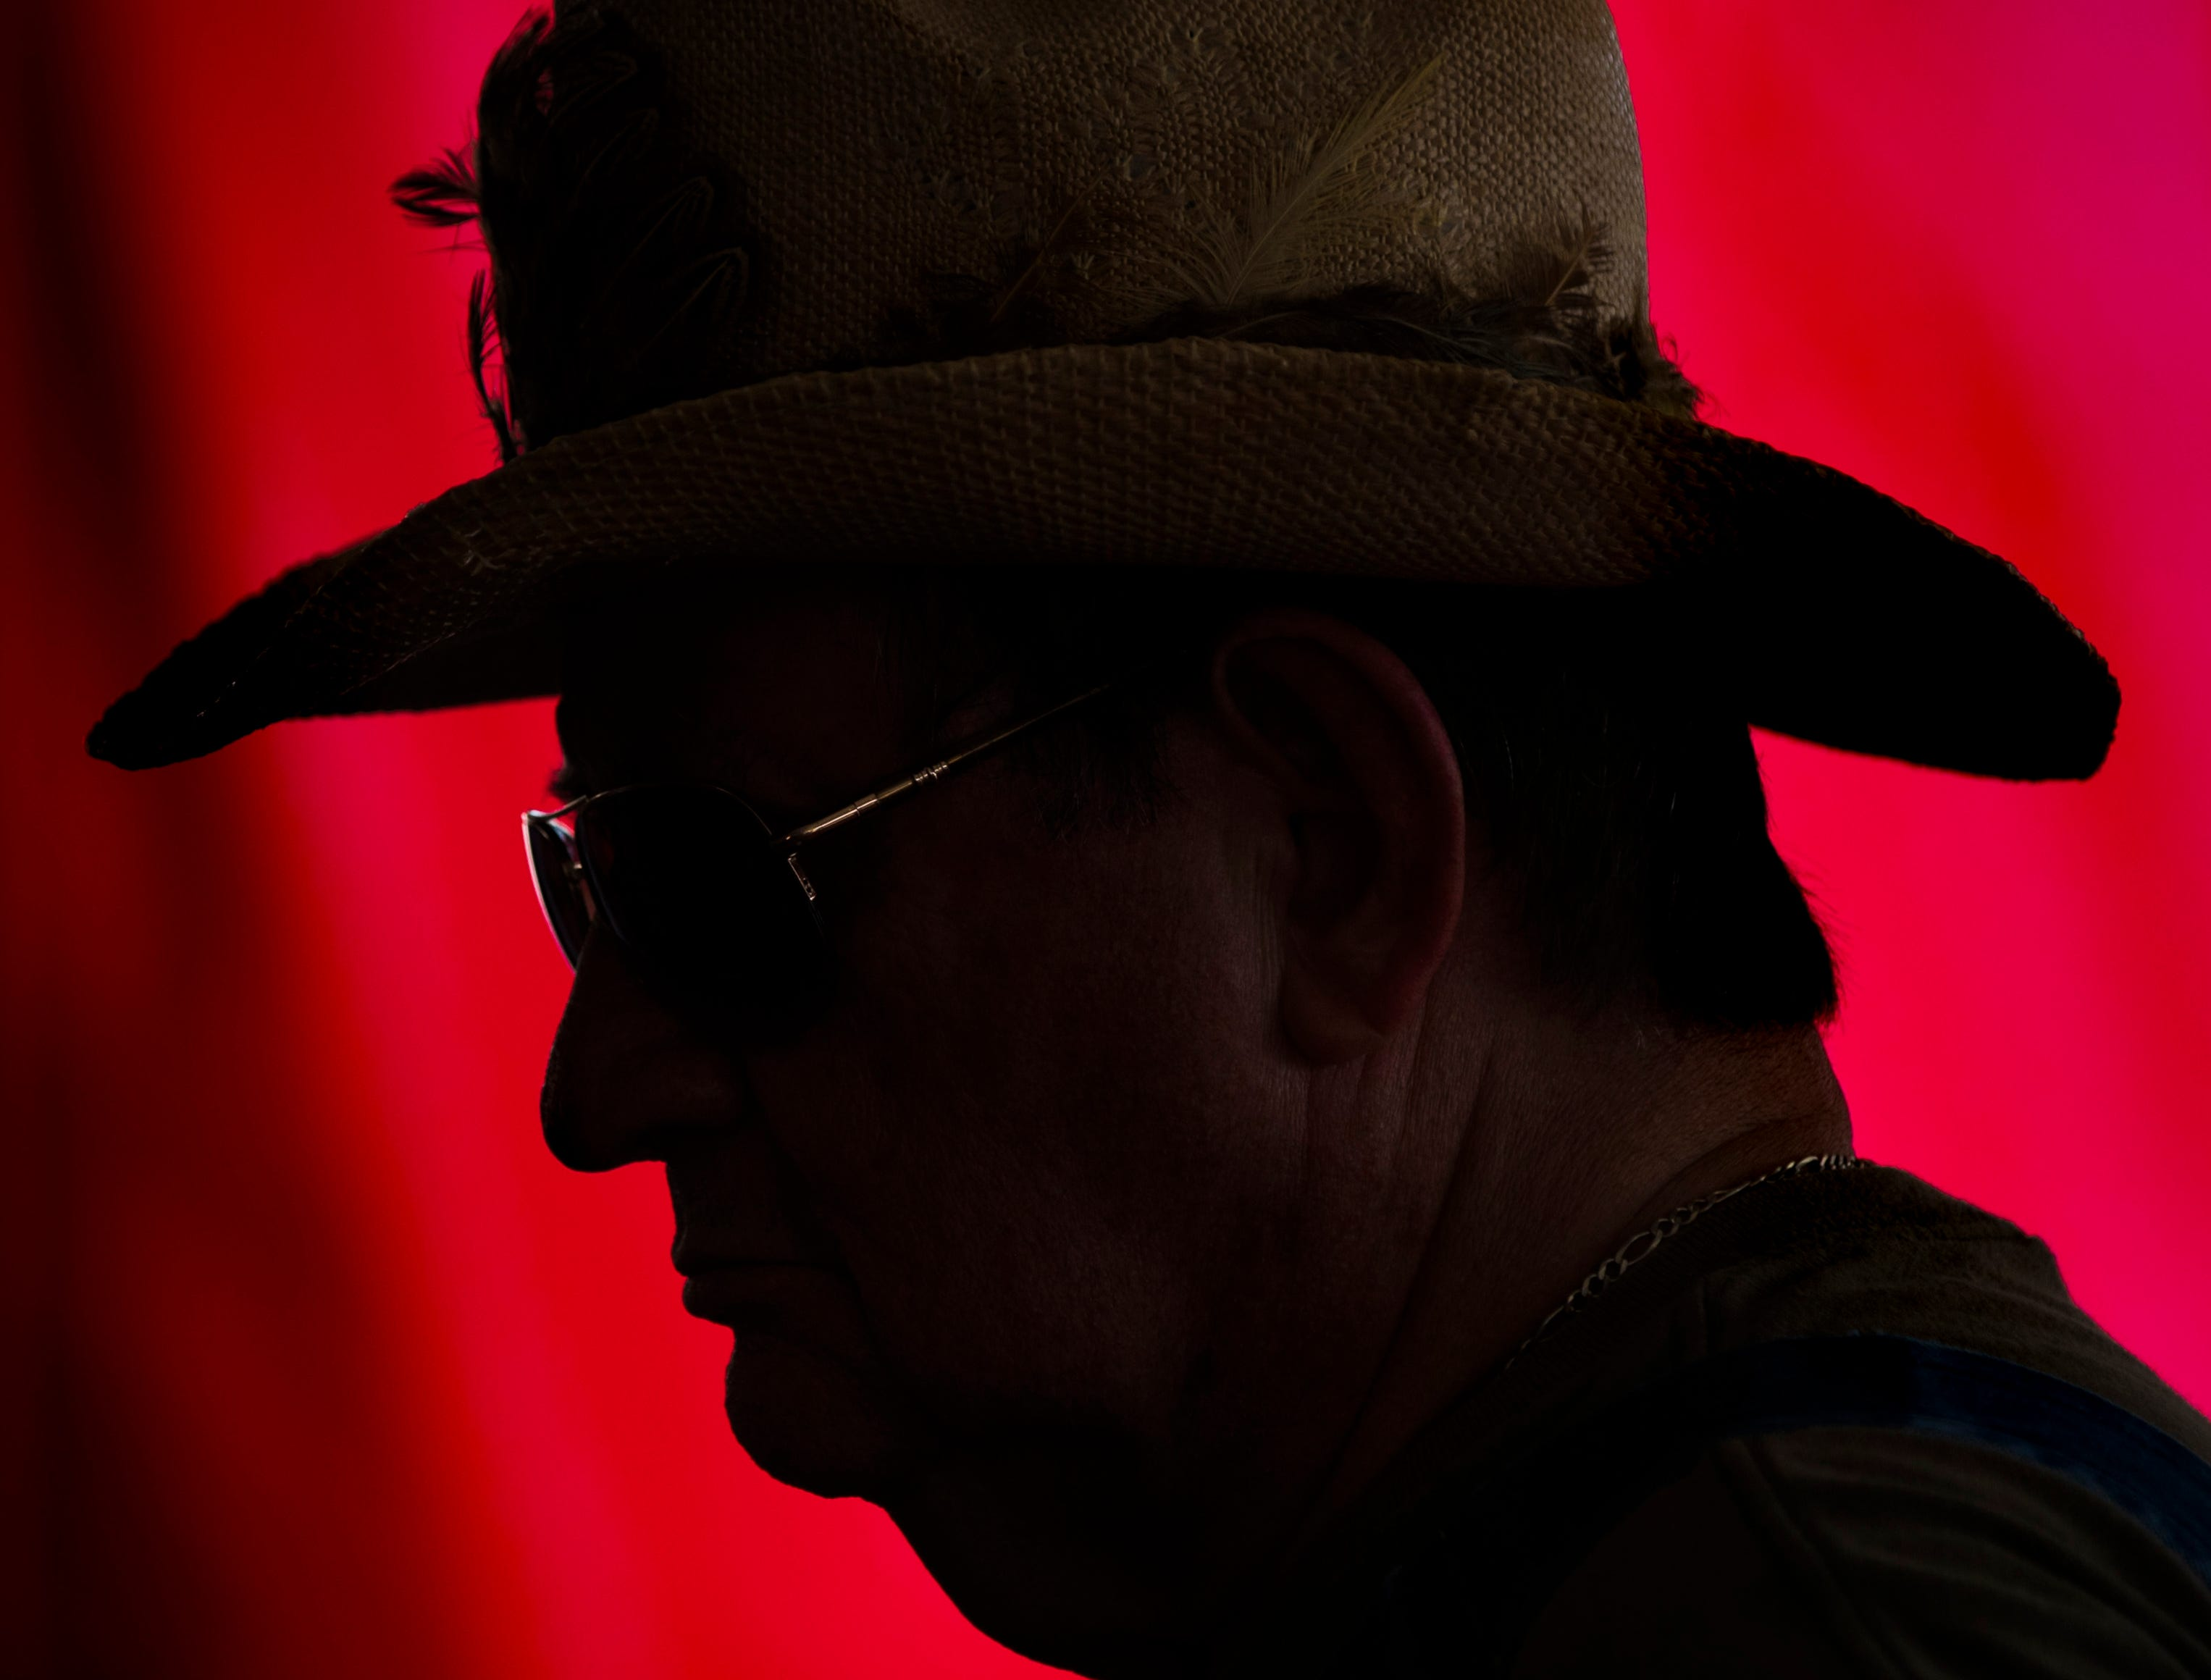 John Mullins sits in the shade to take in some country music at the Kentucky State Fair on Monday. Mullins attends the fair each year and enters artwork and paintings. Aug. 20, 2018